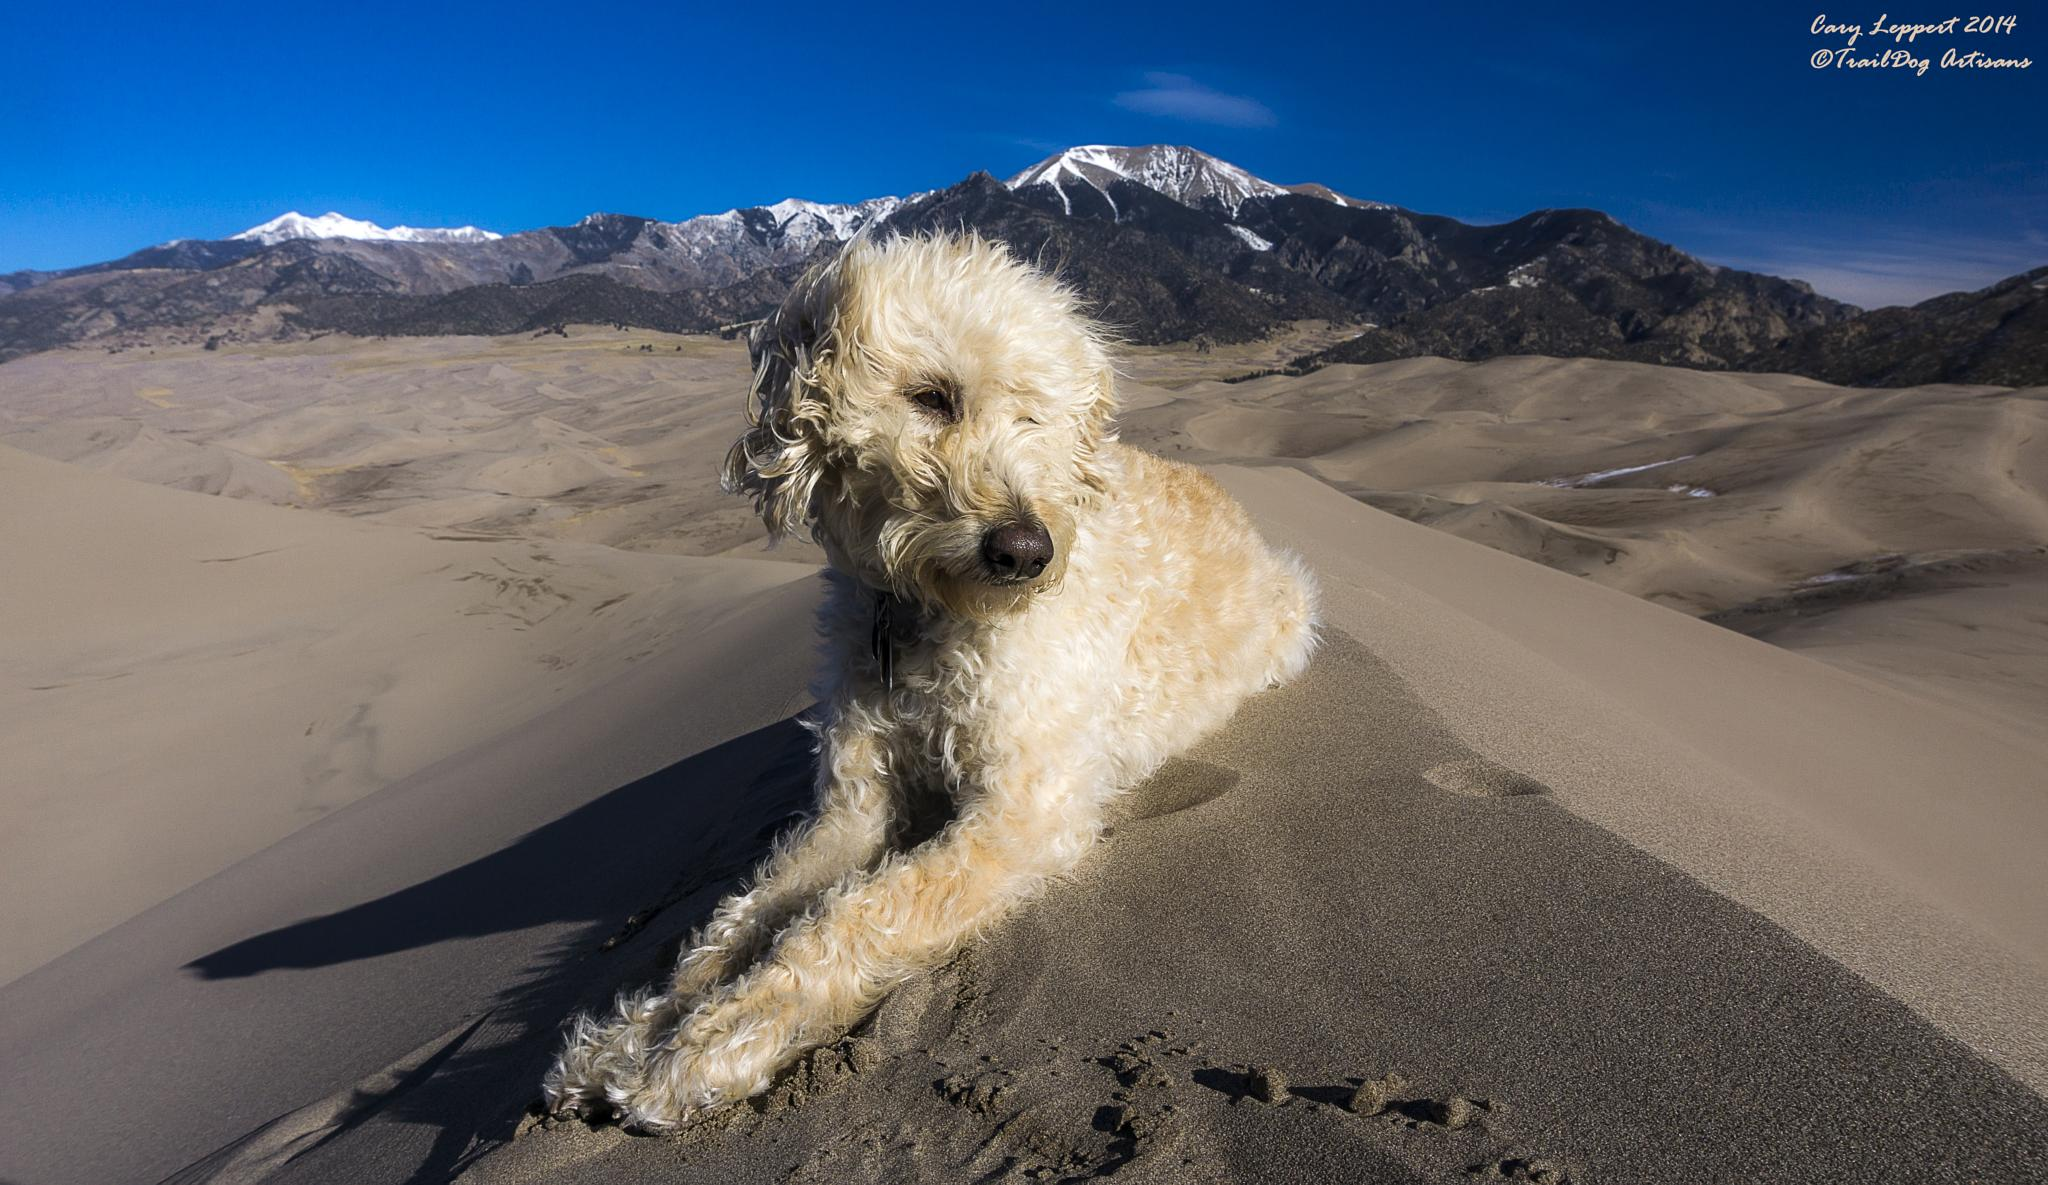 Labradoodle on Crest of Dune by Cary Leppert